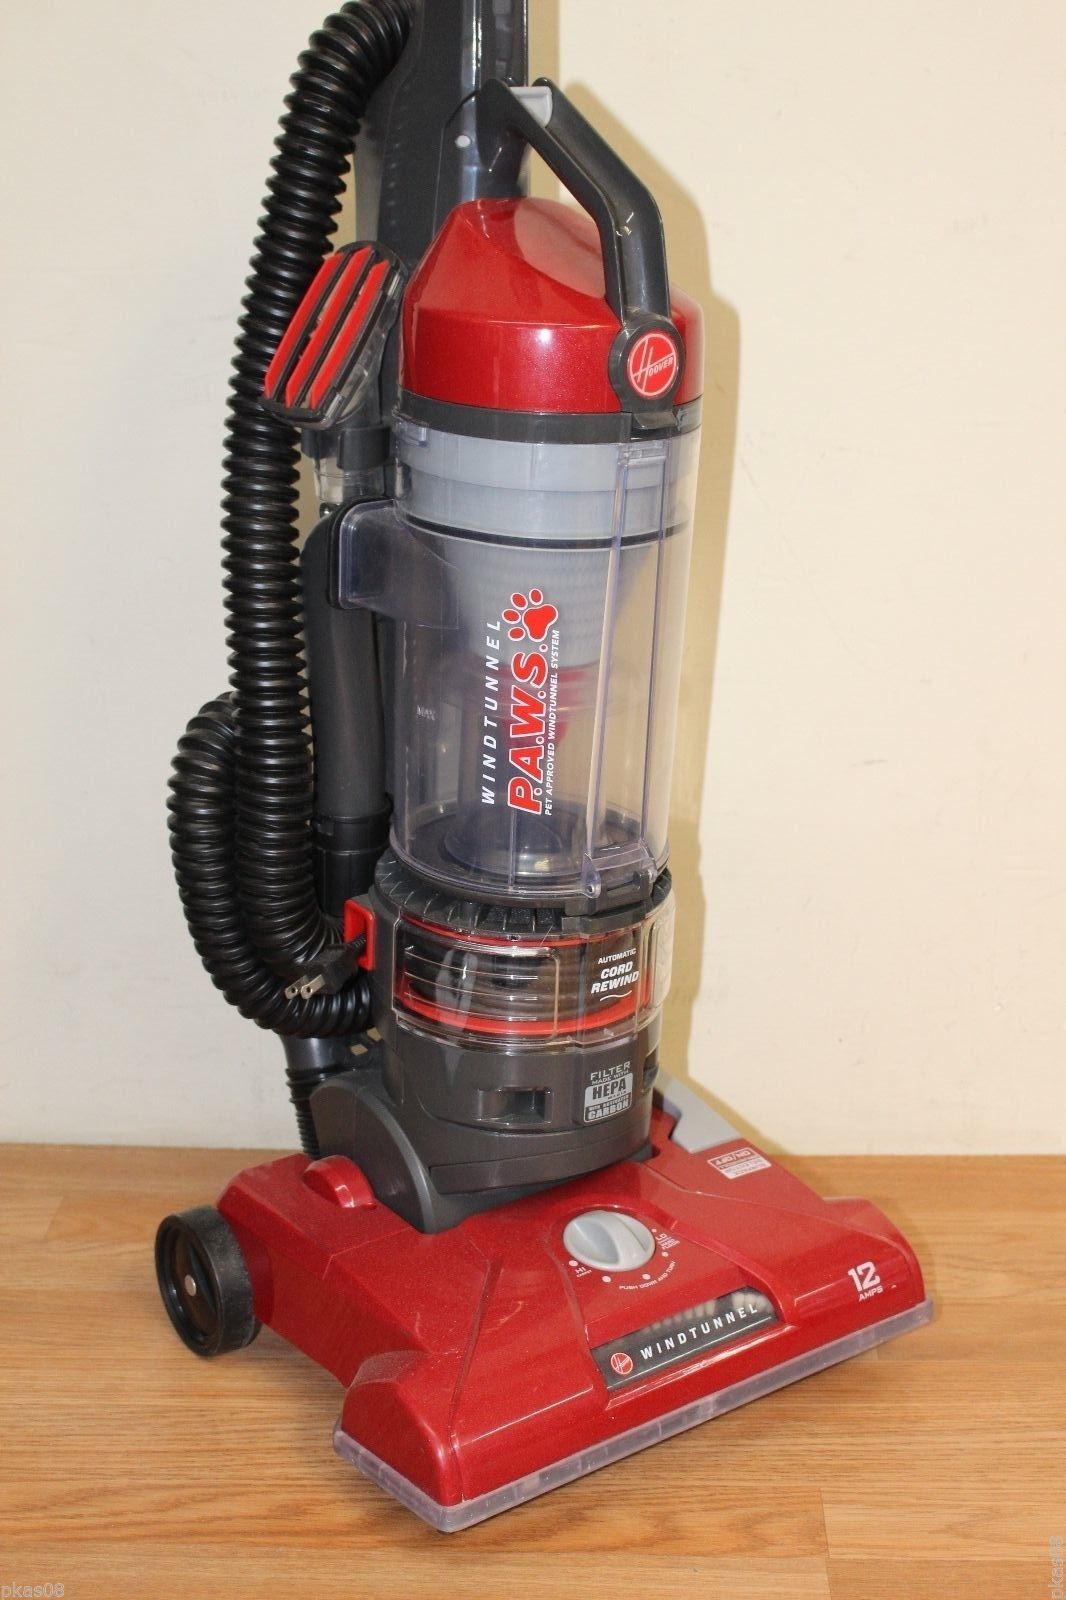 Hoover Windtunnel Cord Rewind PAWS Vacuum Bagless Upright